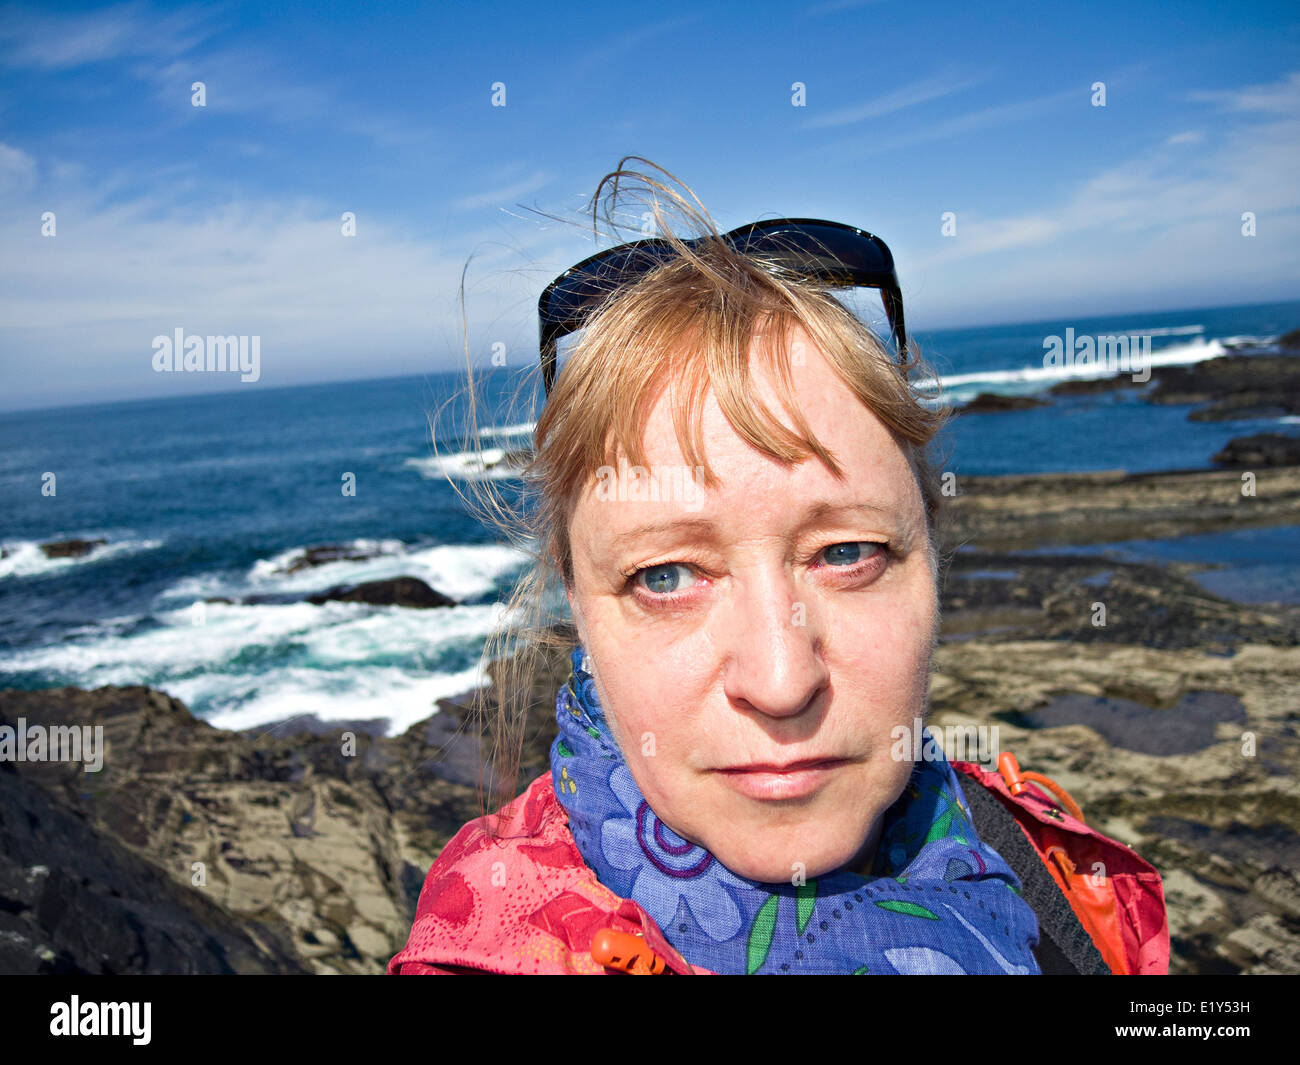 Middle aged woman in front of a seaside landscape. - Stock Image